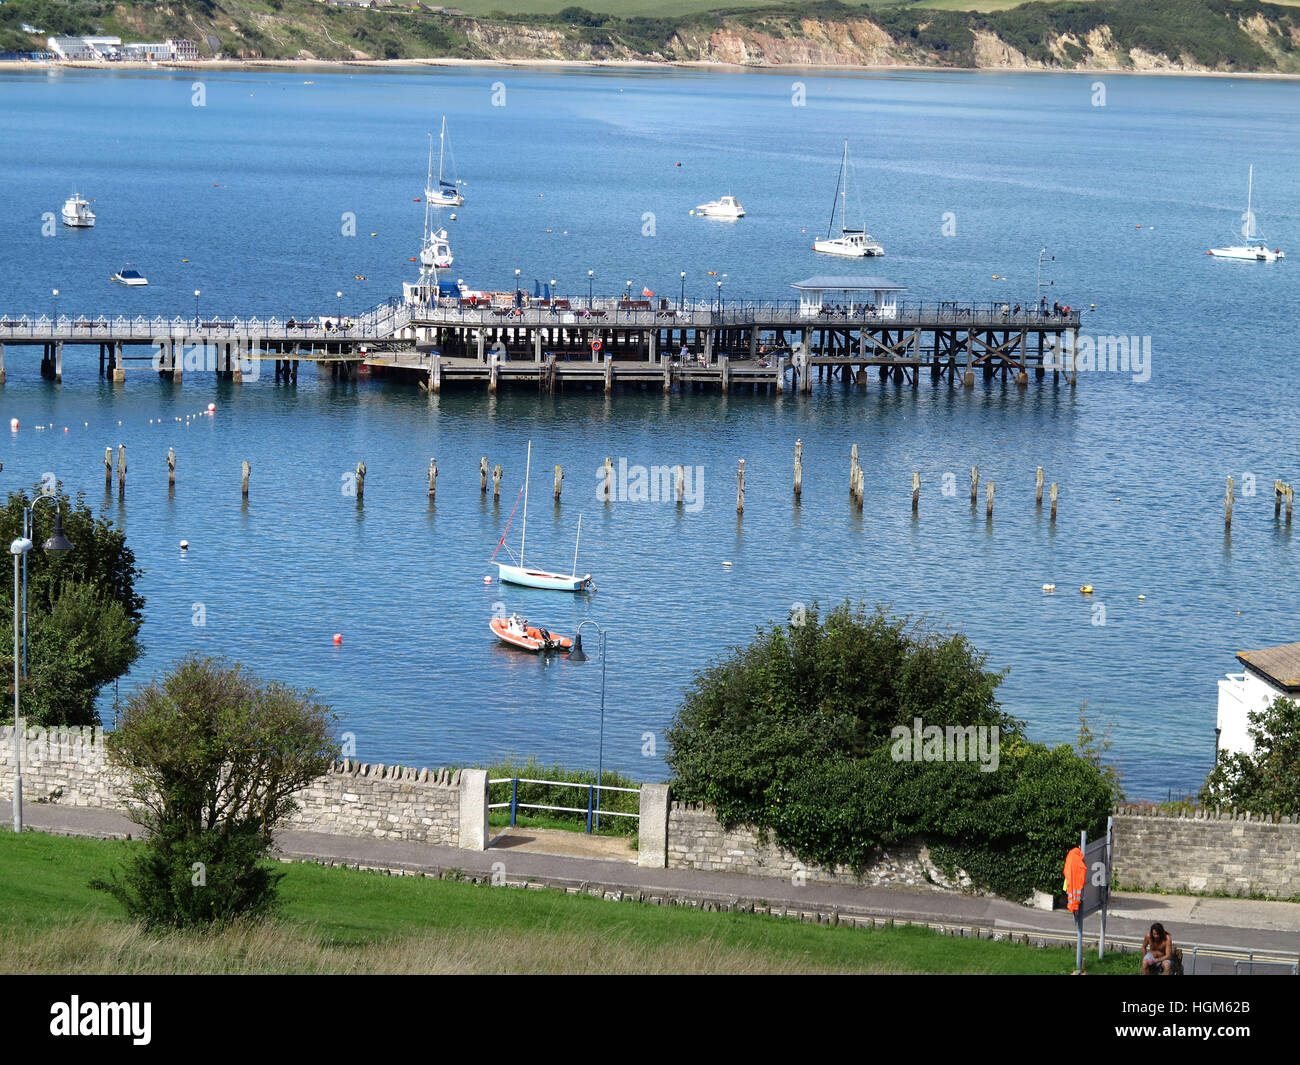 Remains of Old Pier, in front of the new Swanage Pier, Dorset, England - Stock Image